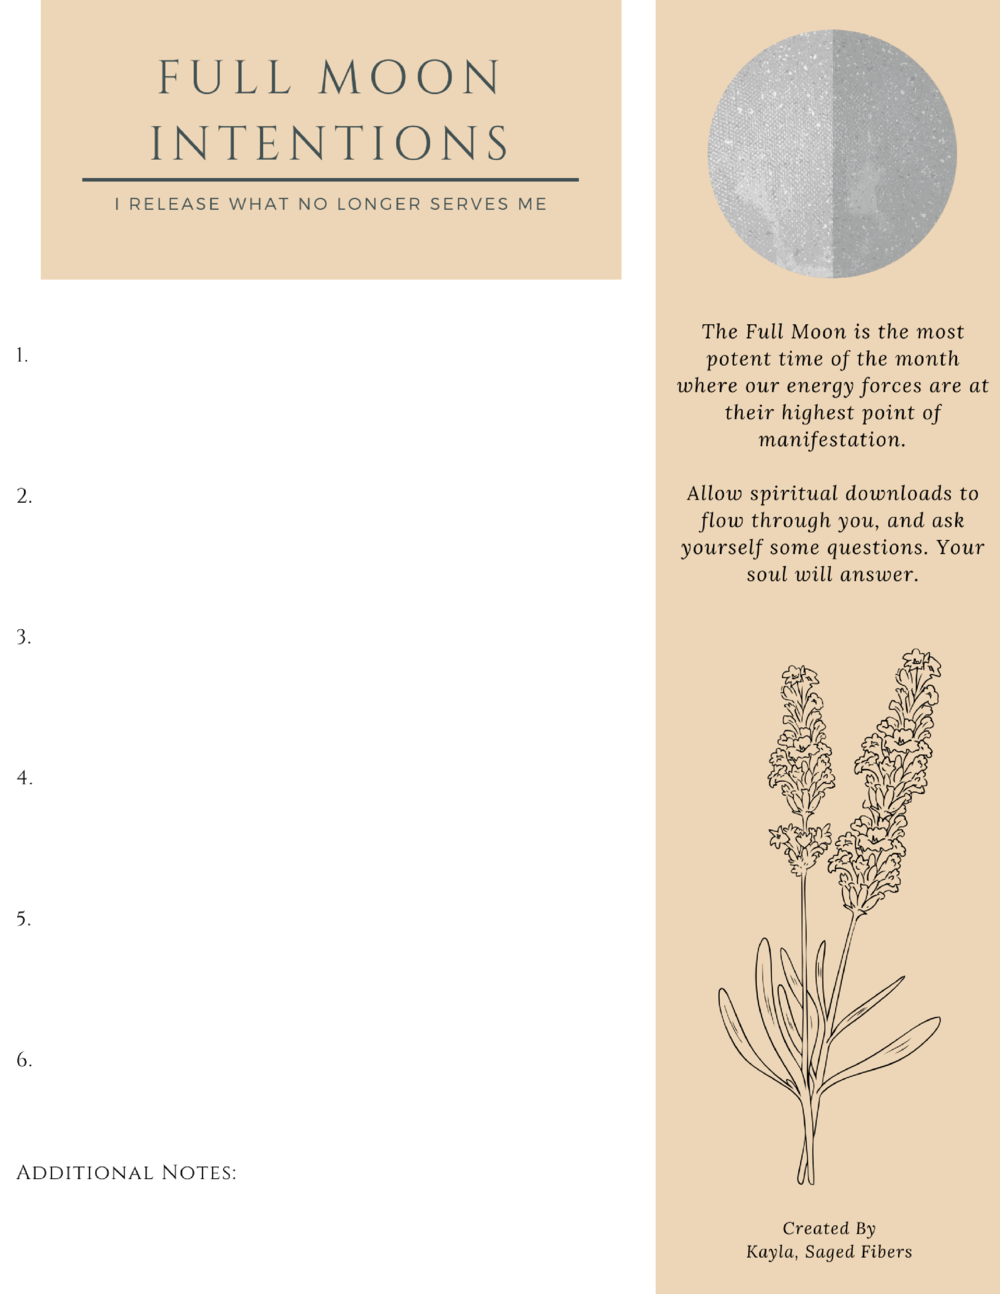 Full Moon Intentions (1).png